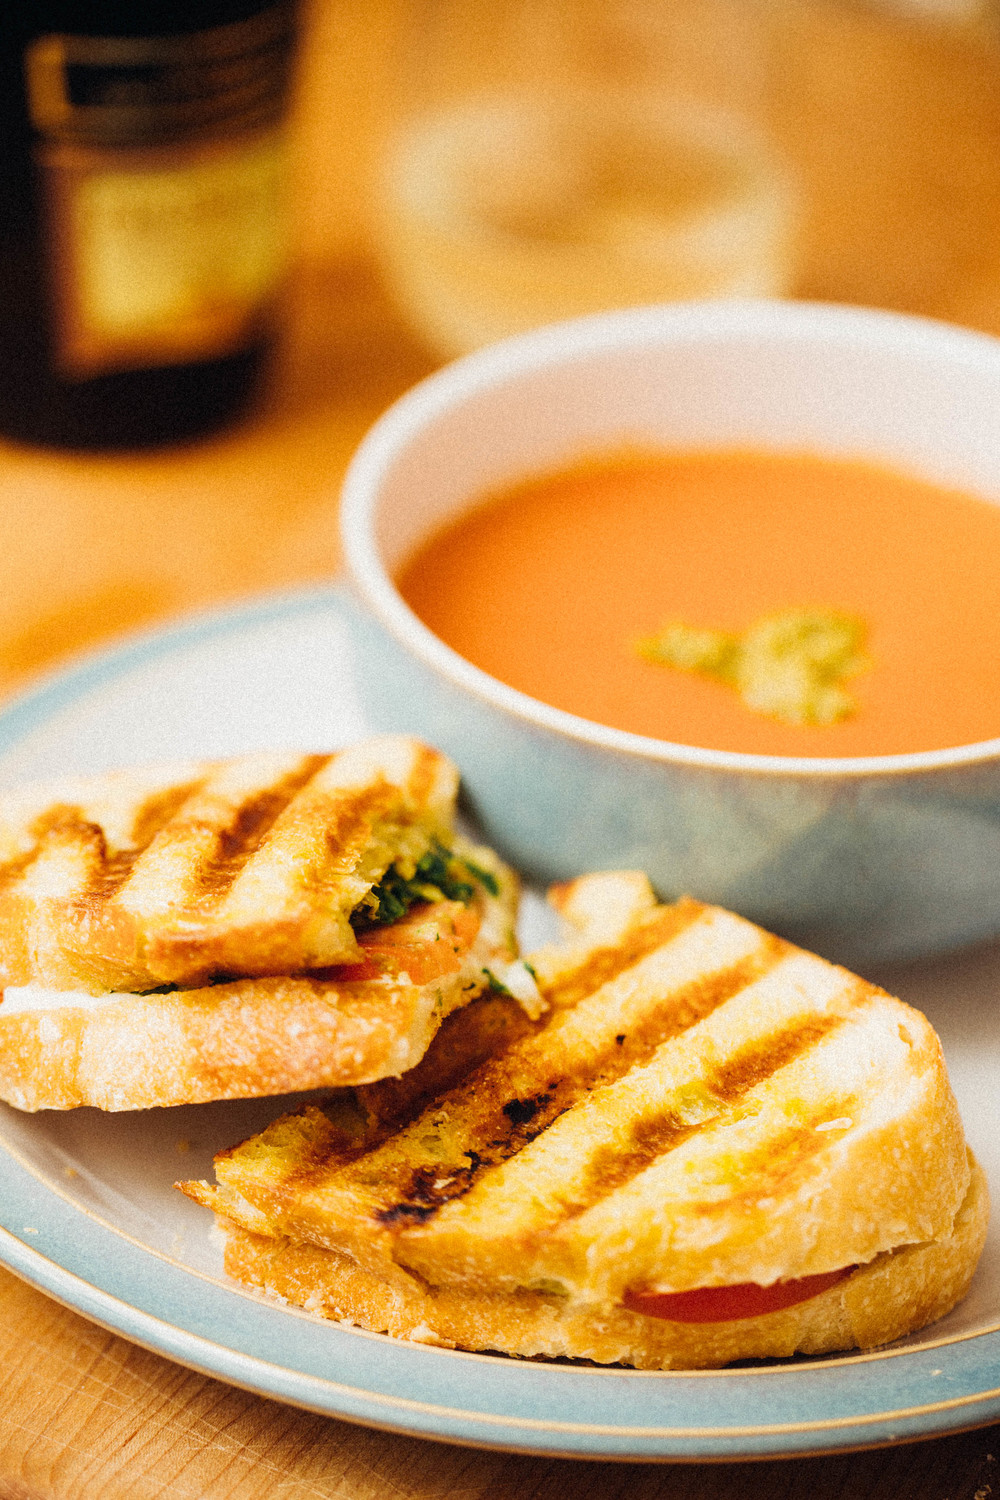 Roasted red pepper and tomato soup & tomato, kale and mozzarella sandwich with pesto